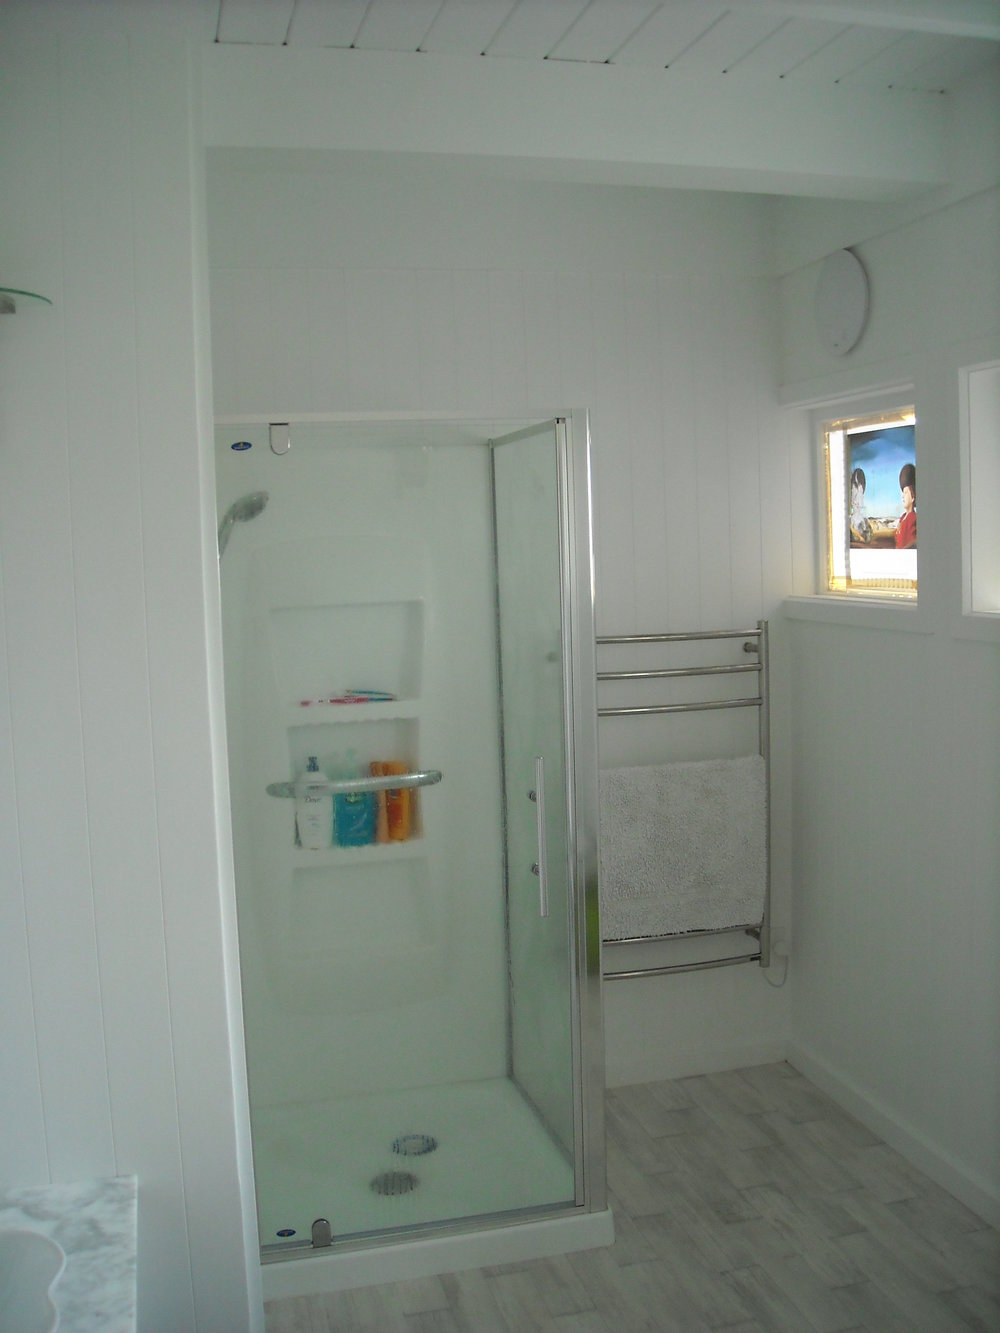 Shower pict window 007.JPG